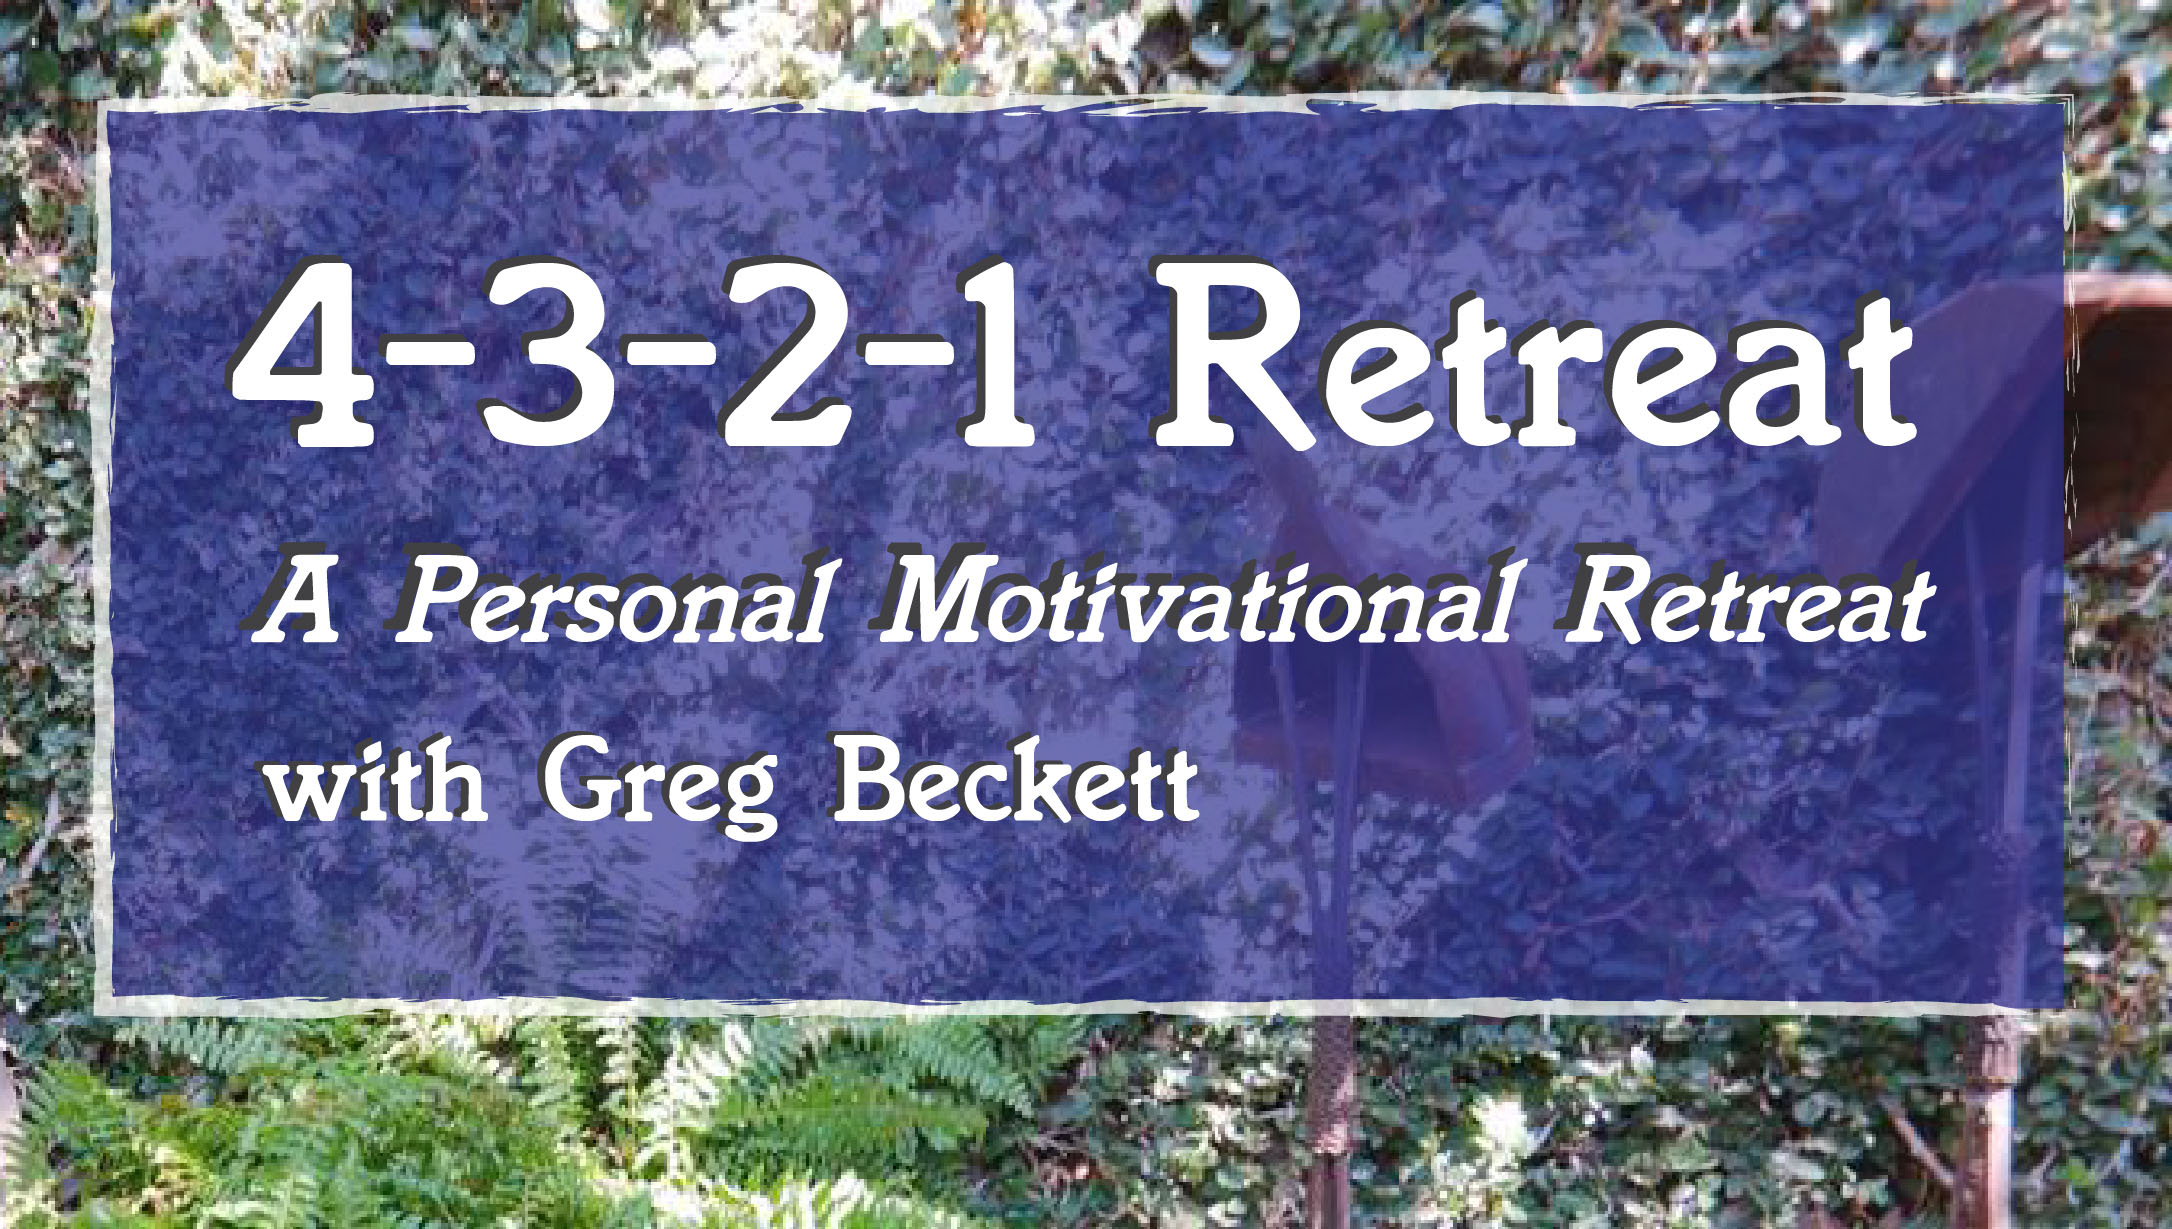 4-3-2-1 Retreat